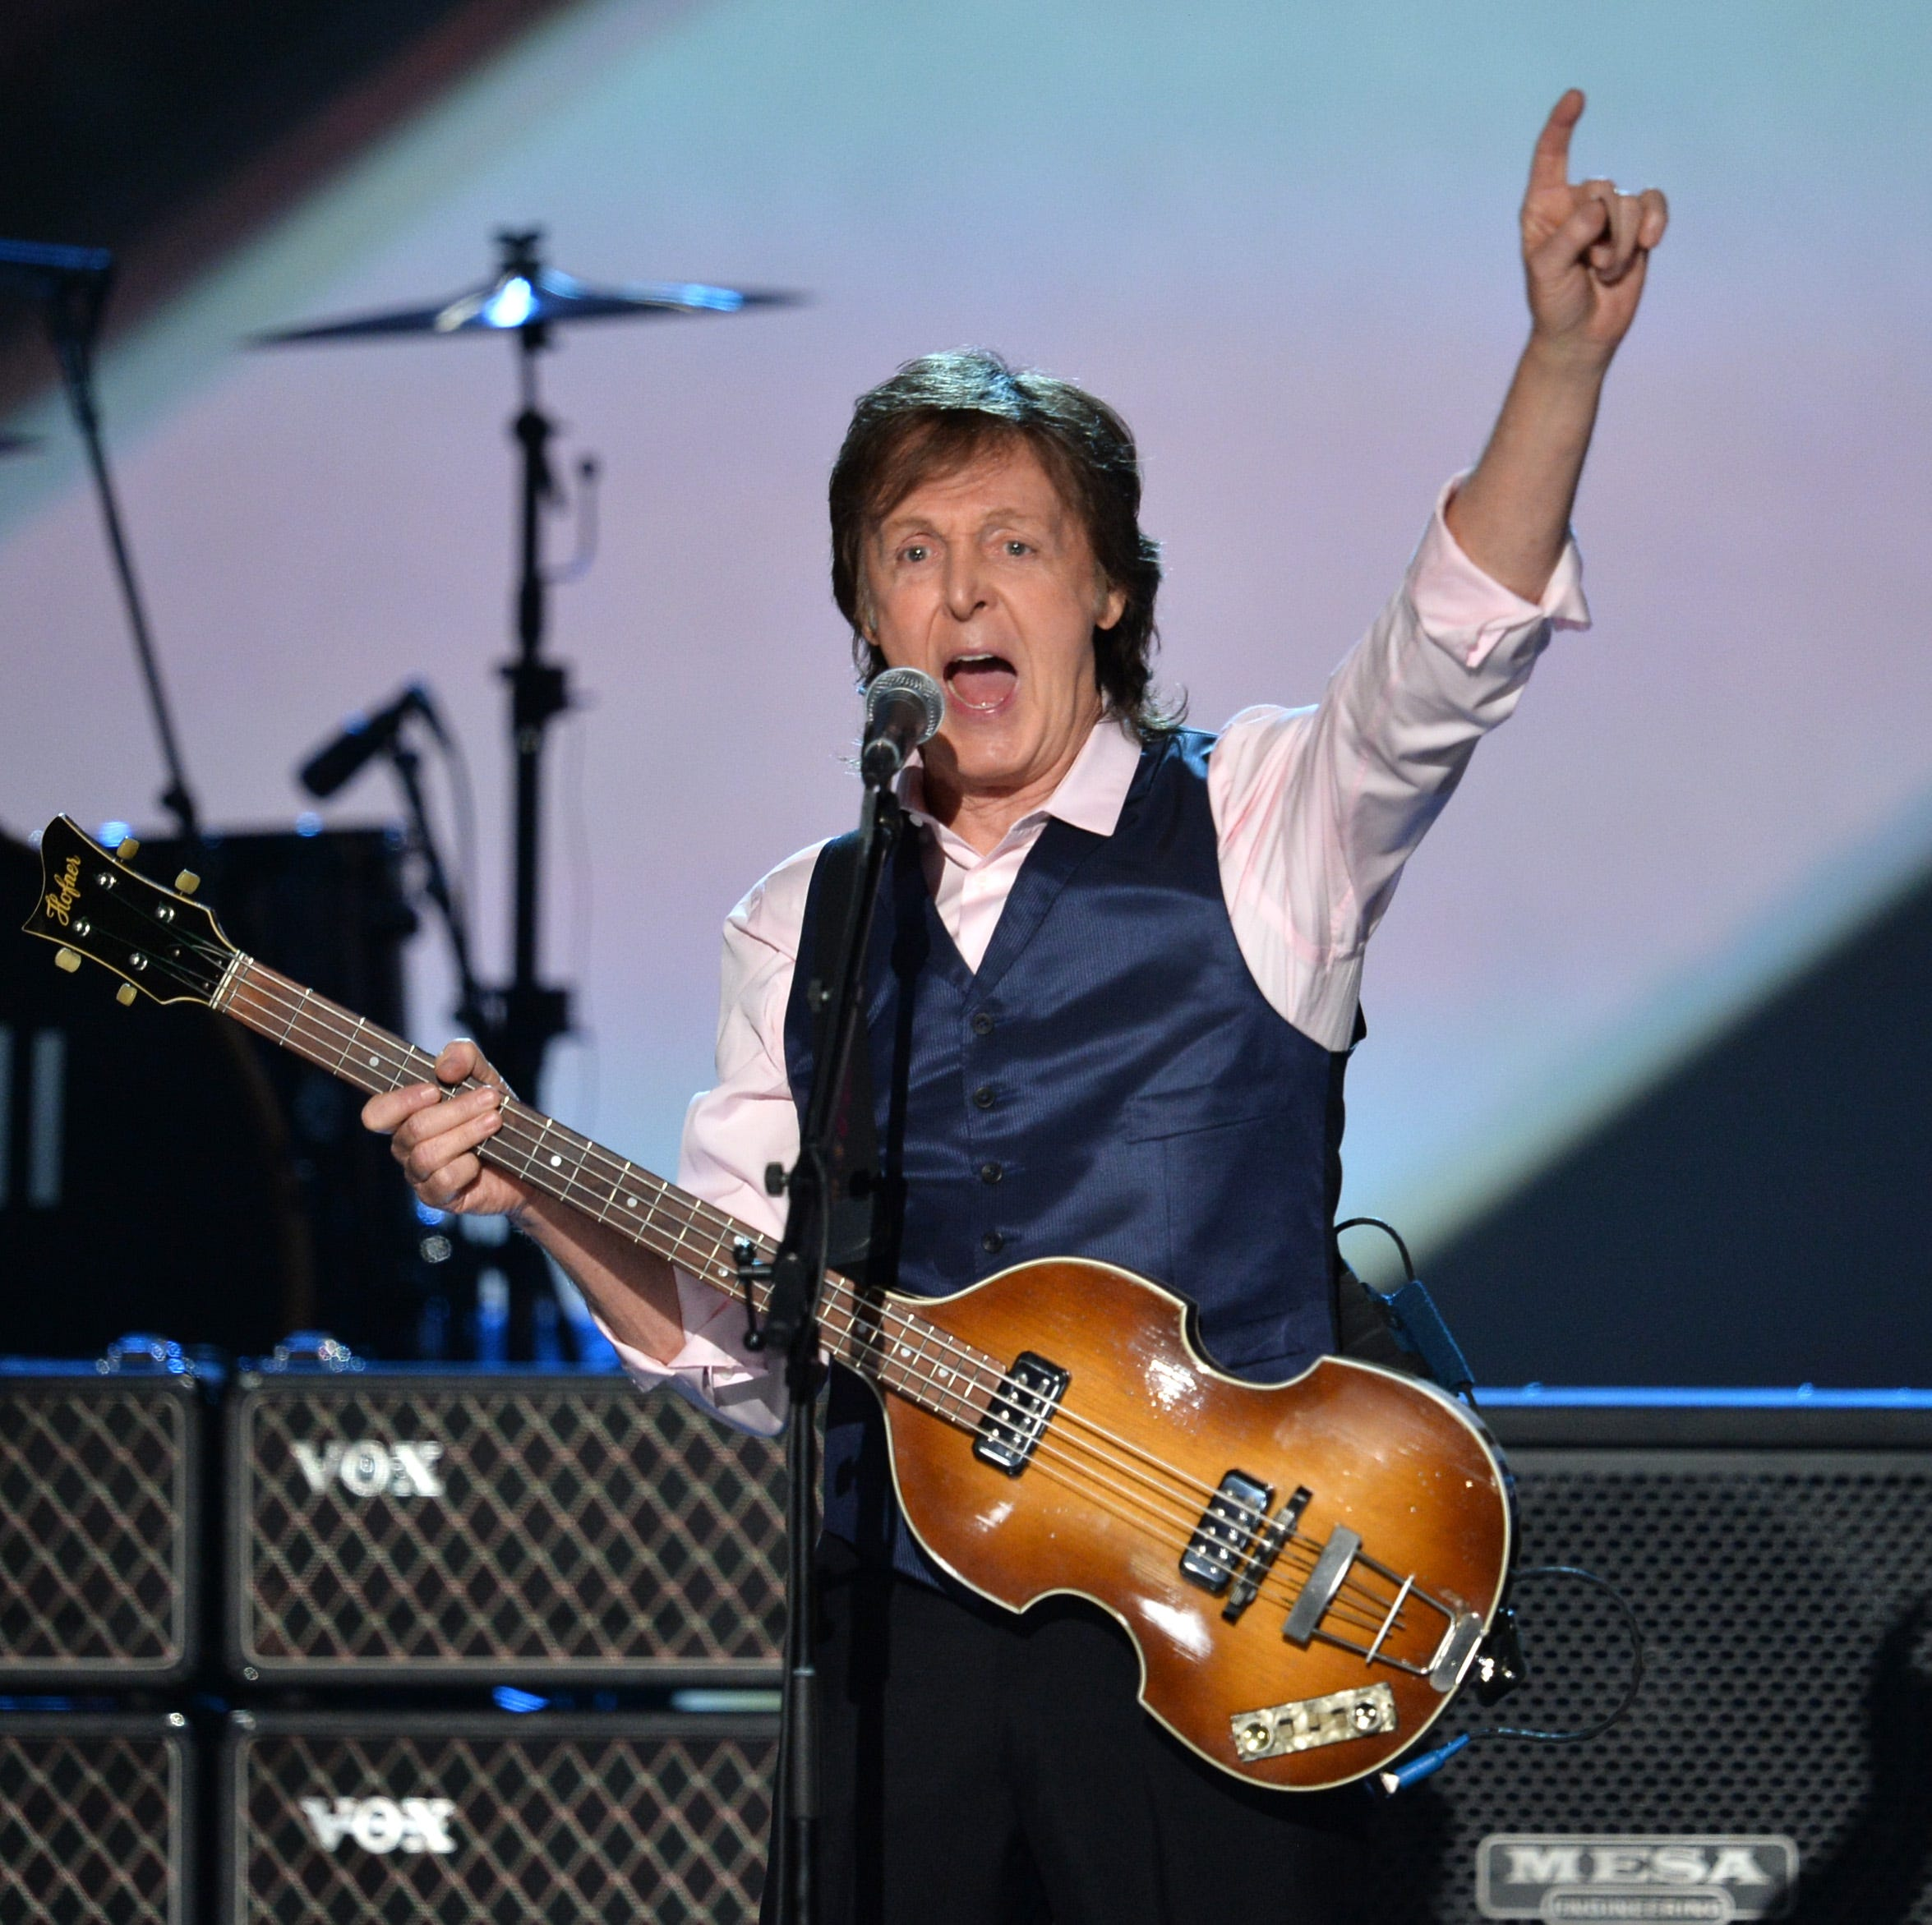 Packers announce details for Paul McCartney concert at Lambeau